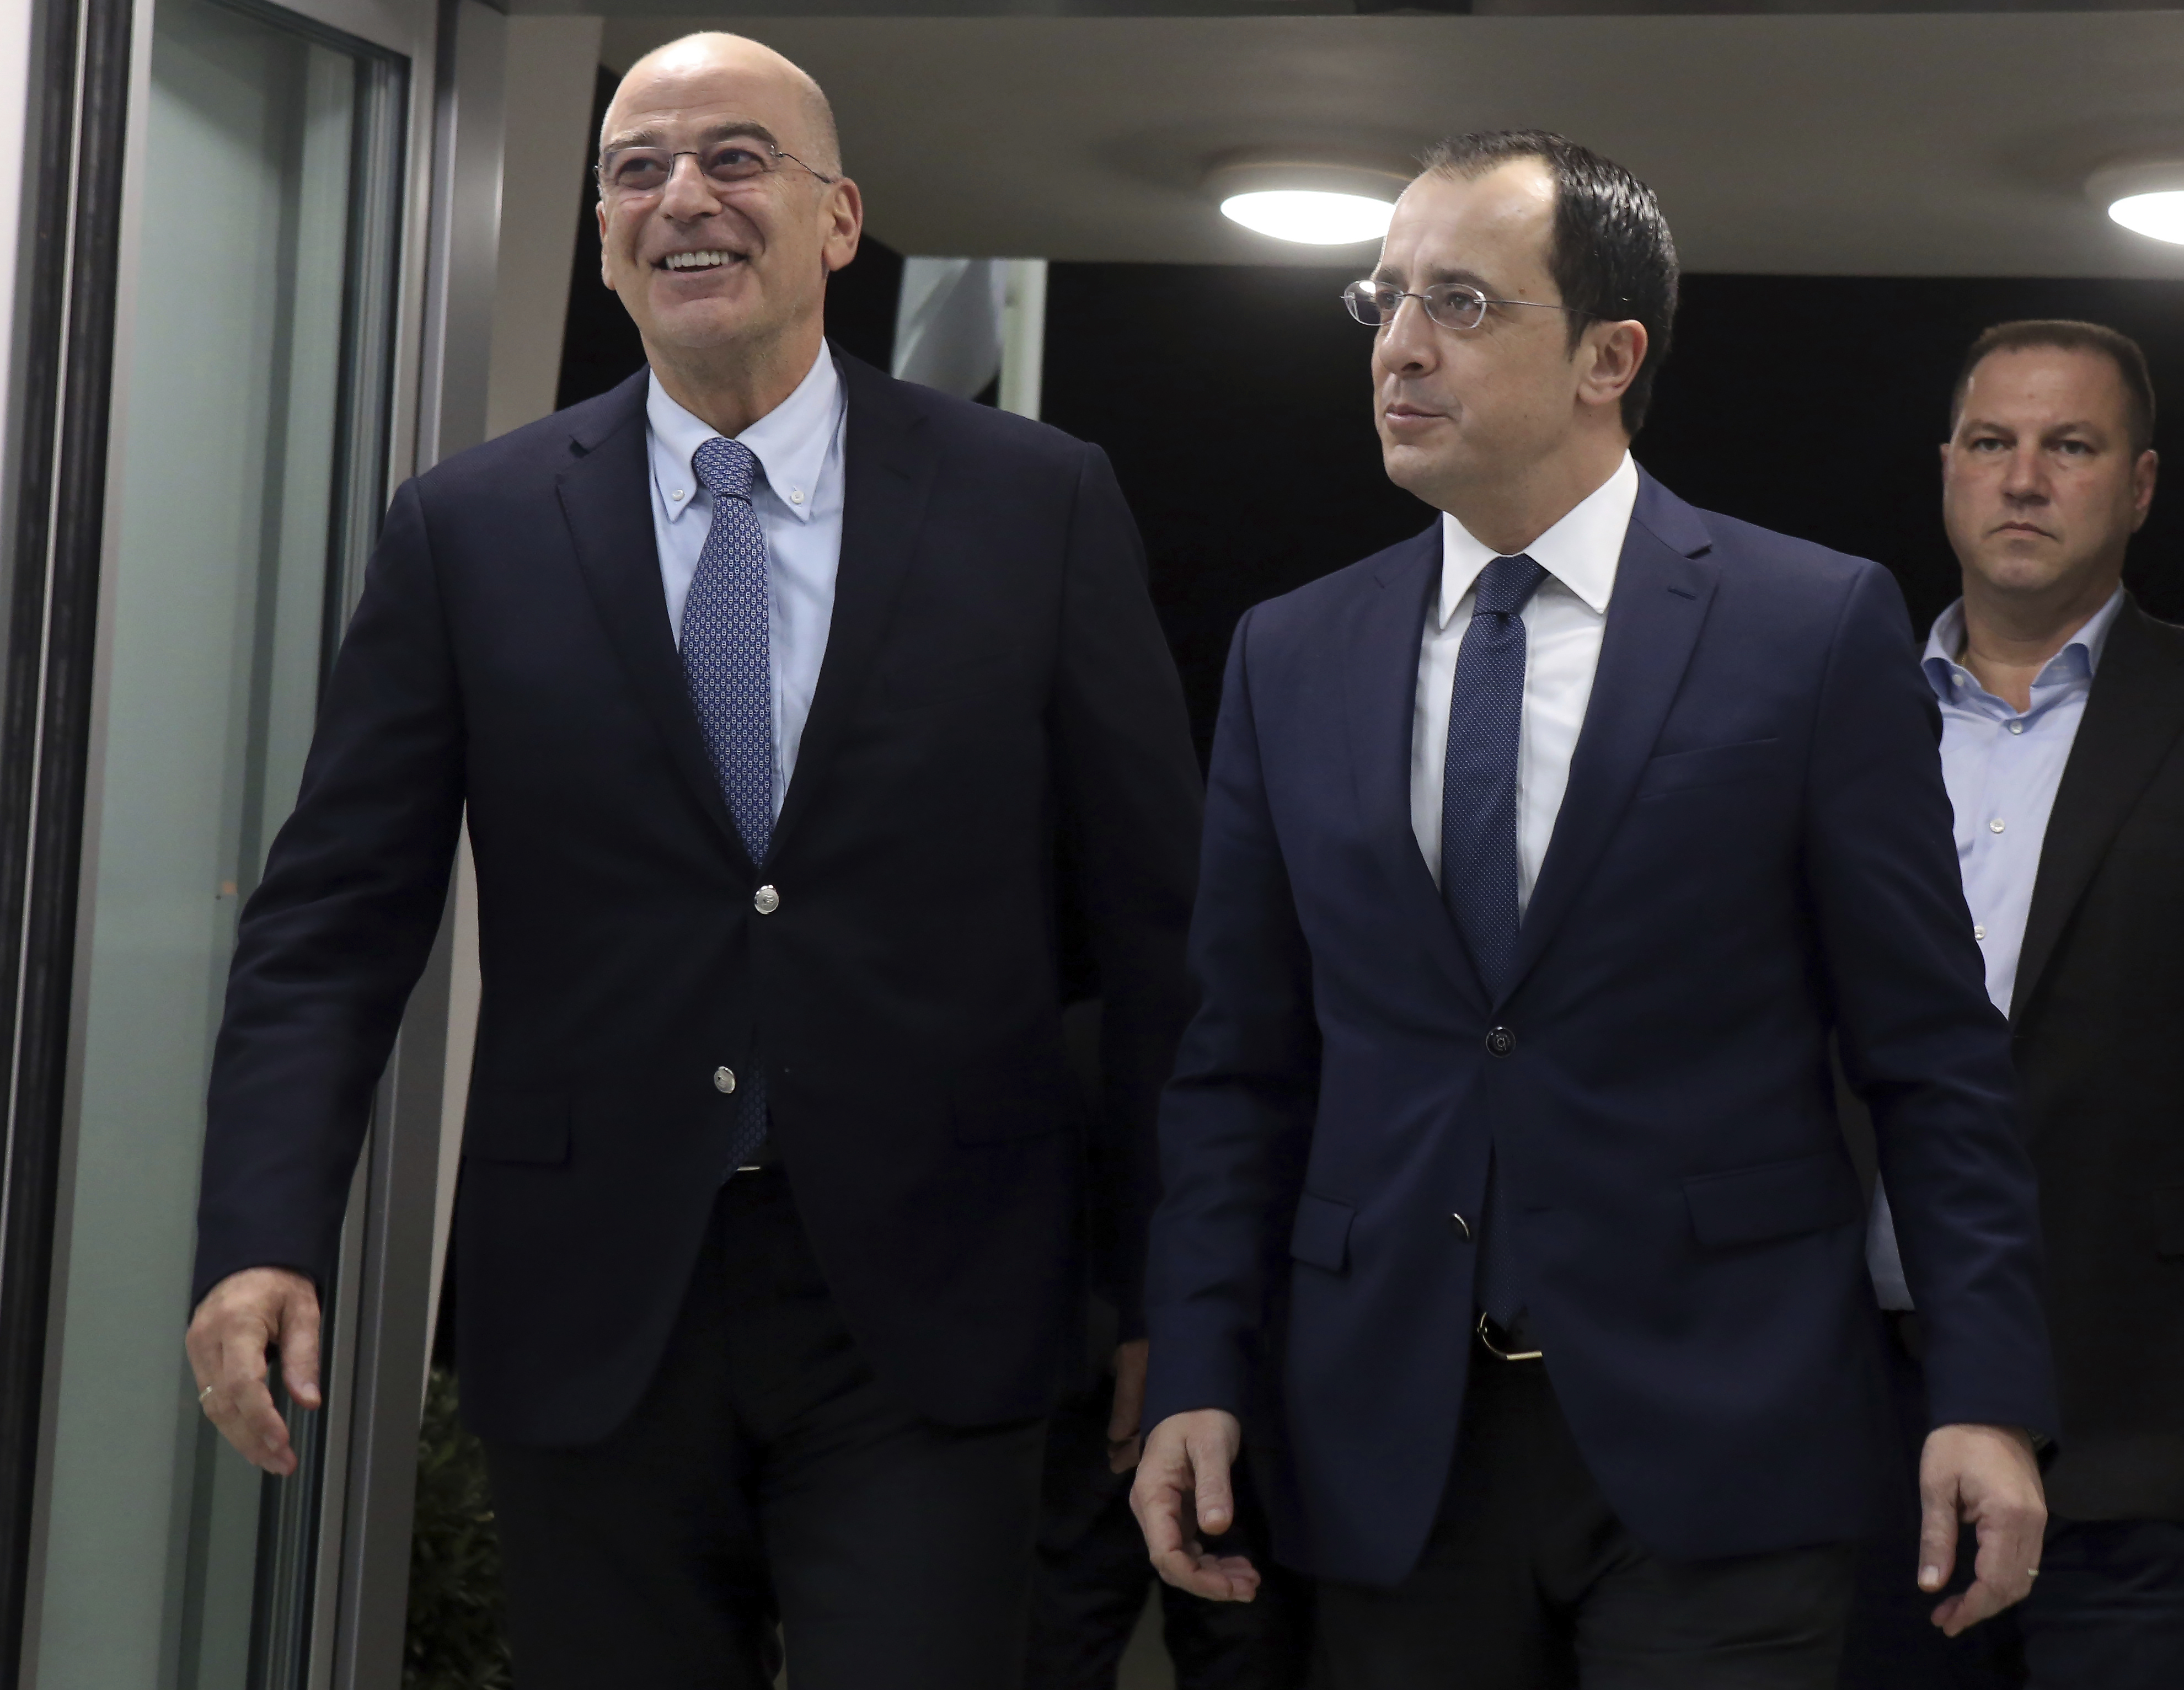 Greece's Foreign Minister Nikos Dendias, left, talks with Cypriot counterpart Nikos Christodoulides before their meeting at Cyprus' main airport in the coastal town of Larnaca on Sunday, December 22, 2019.